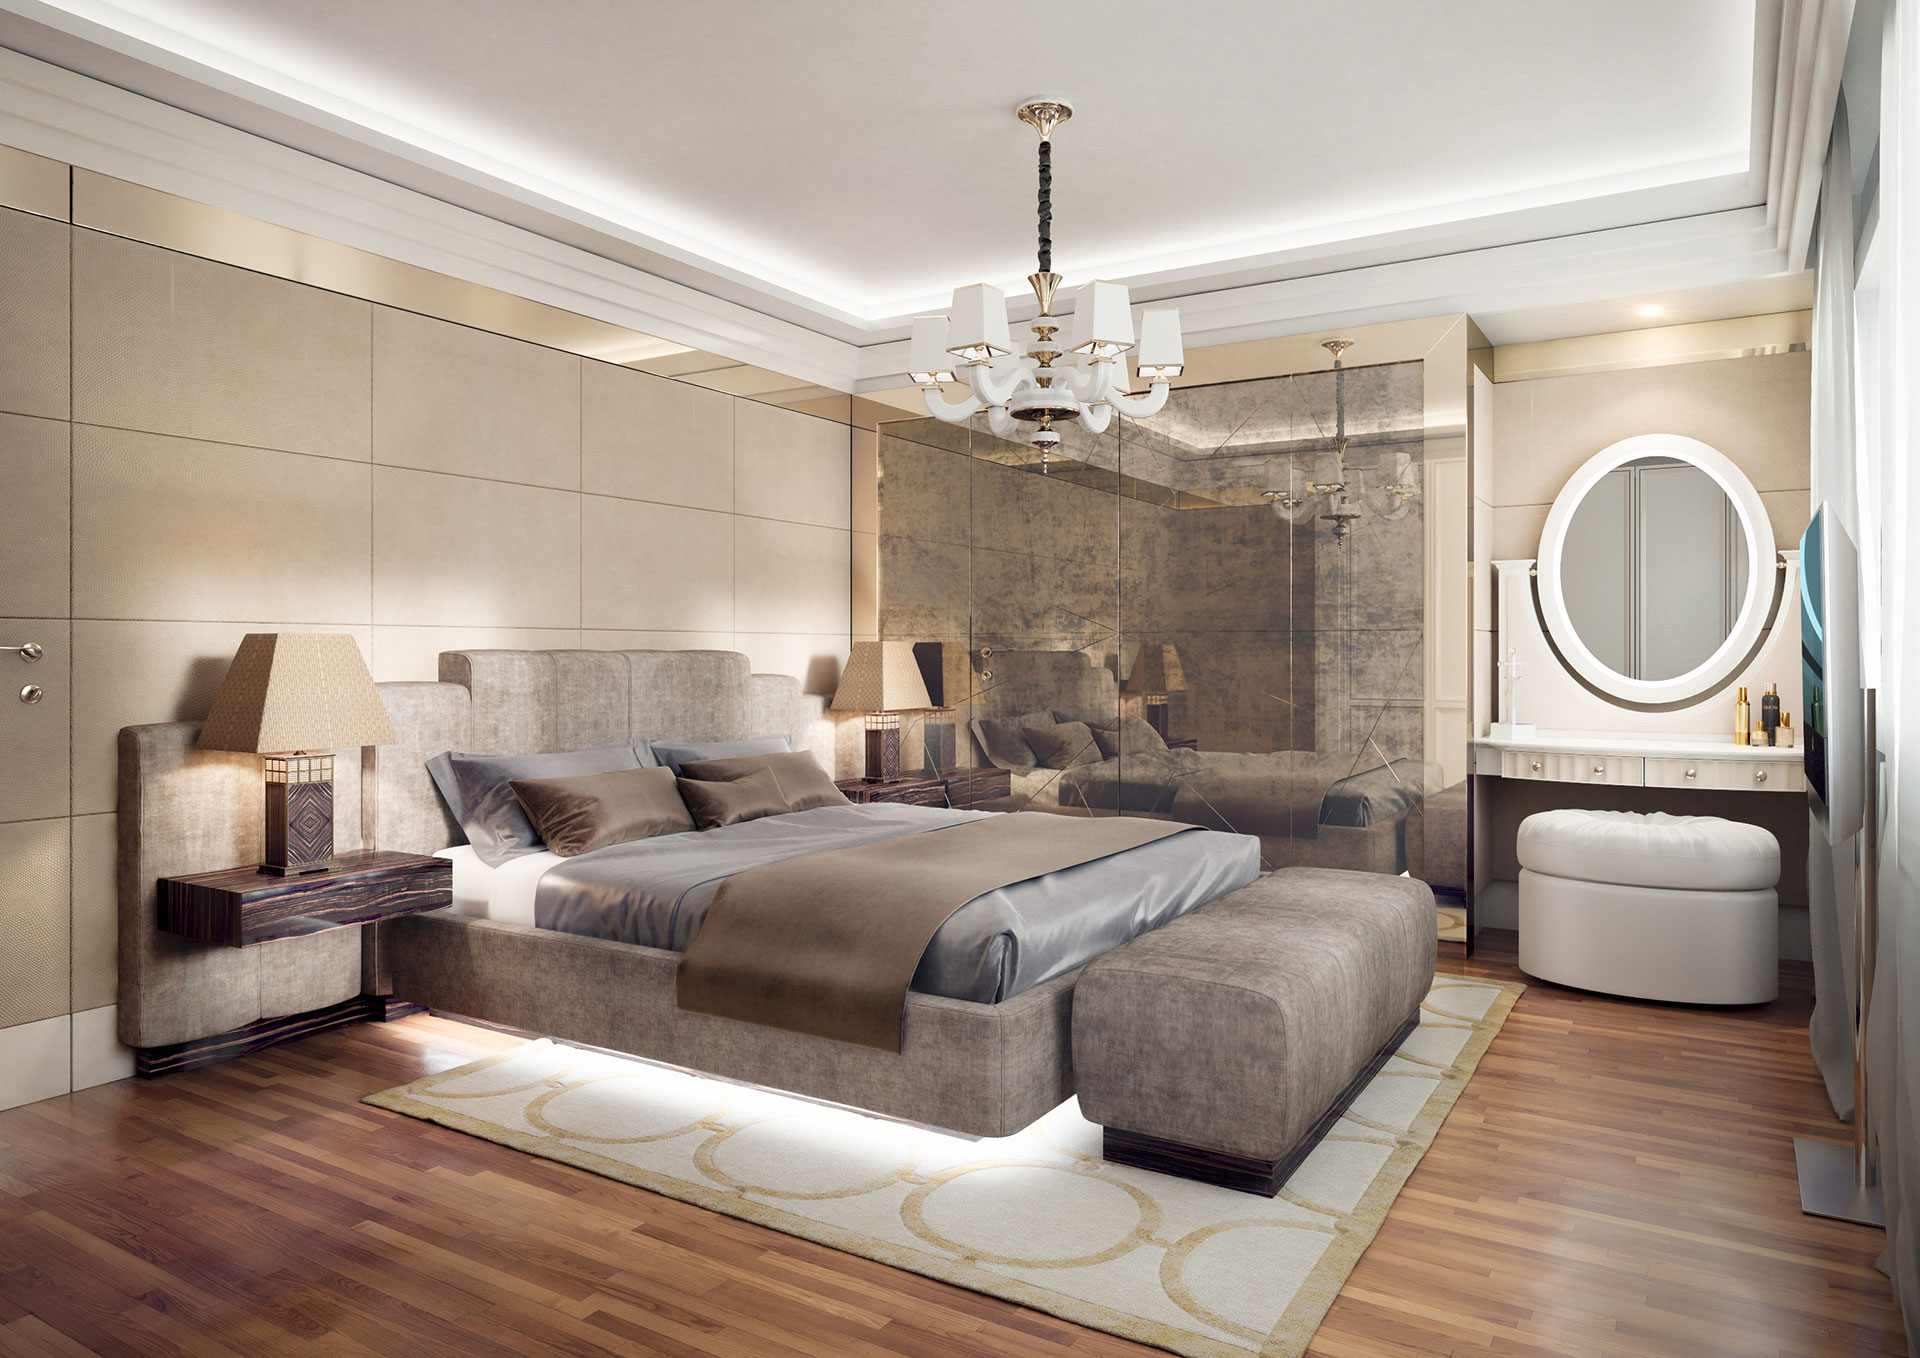 Faoma bespoke design double bedroom